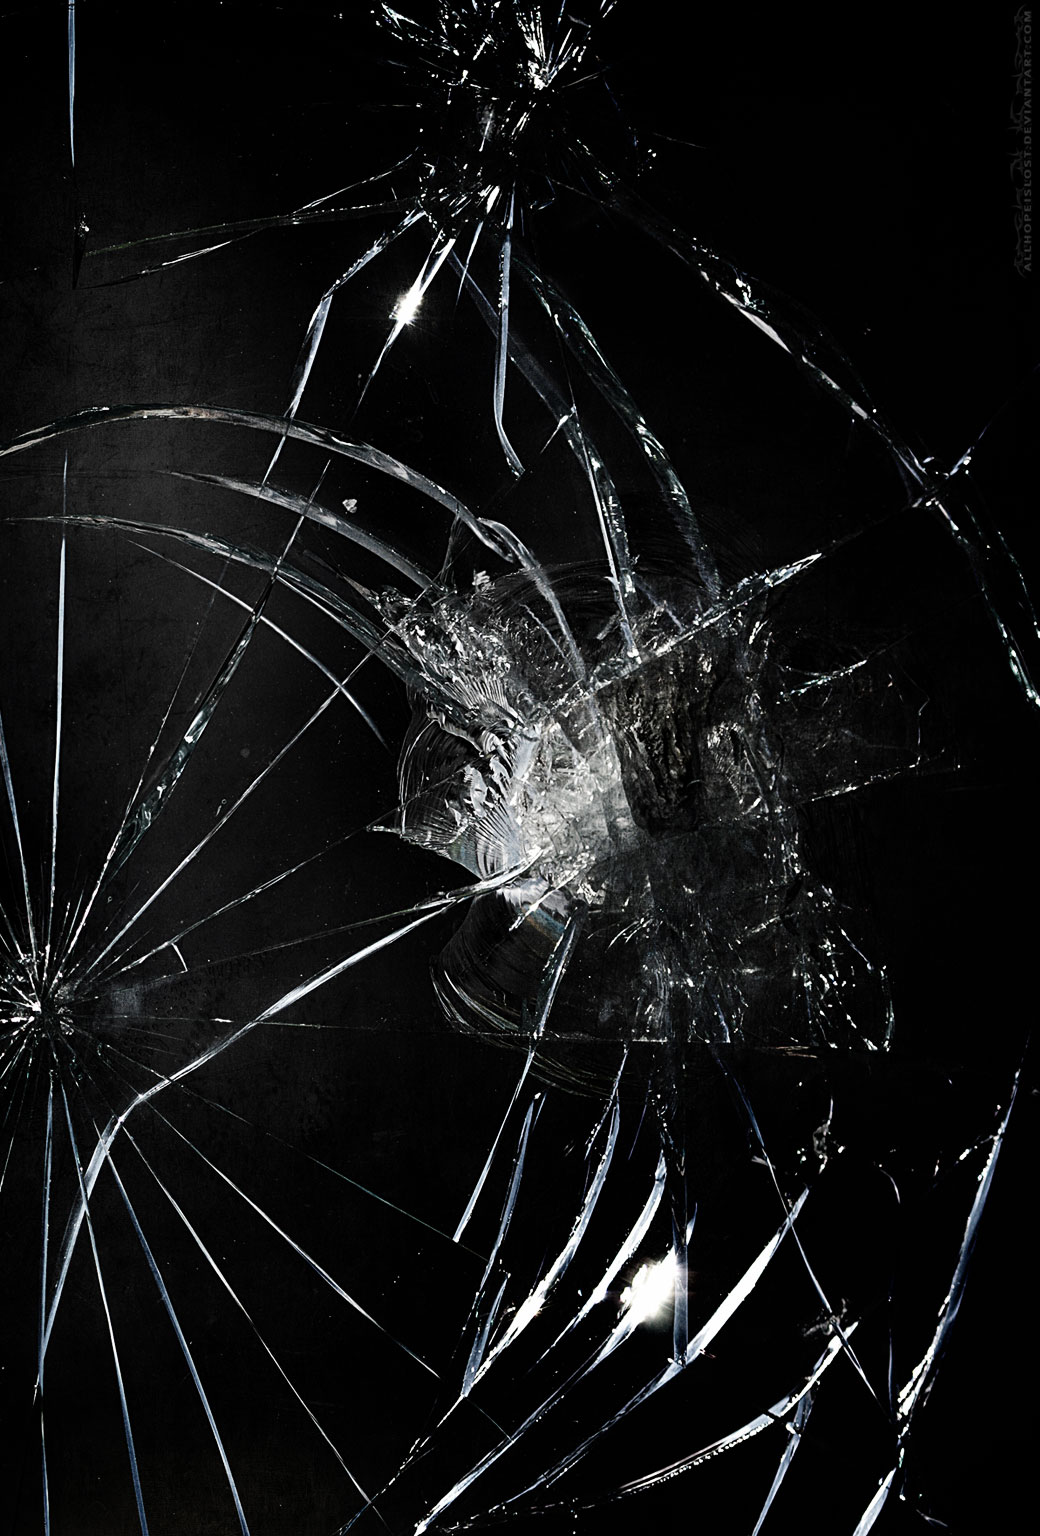 HD Broken Screen Wallpaper - WallpaperSafari